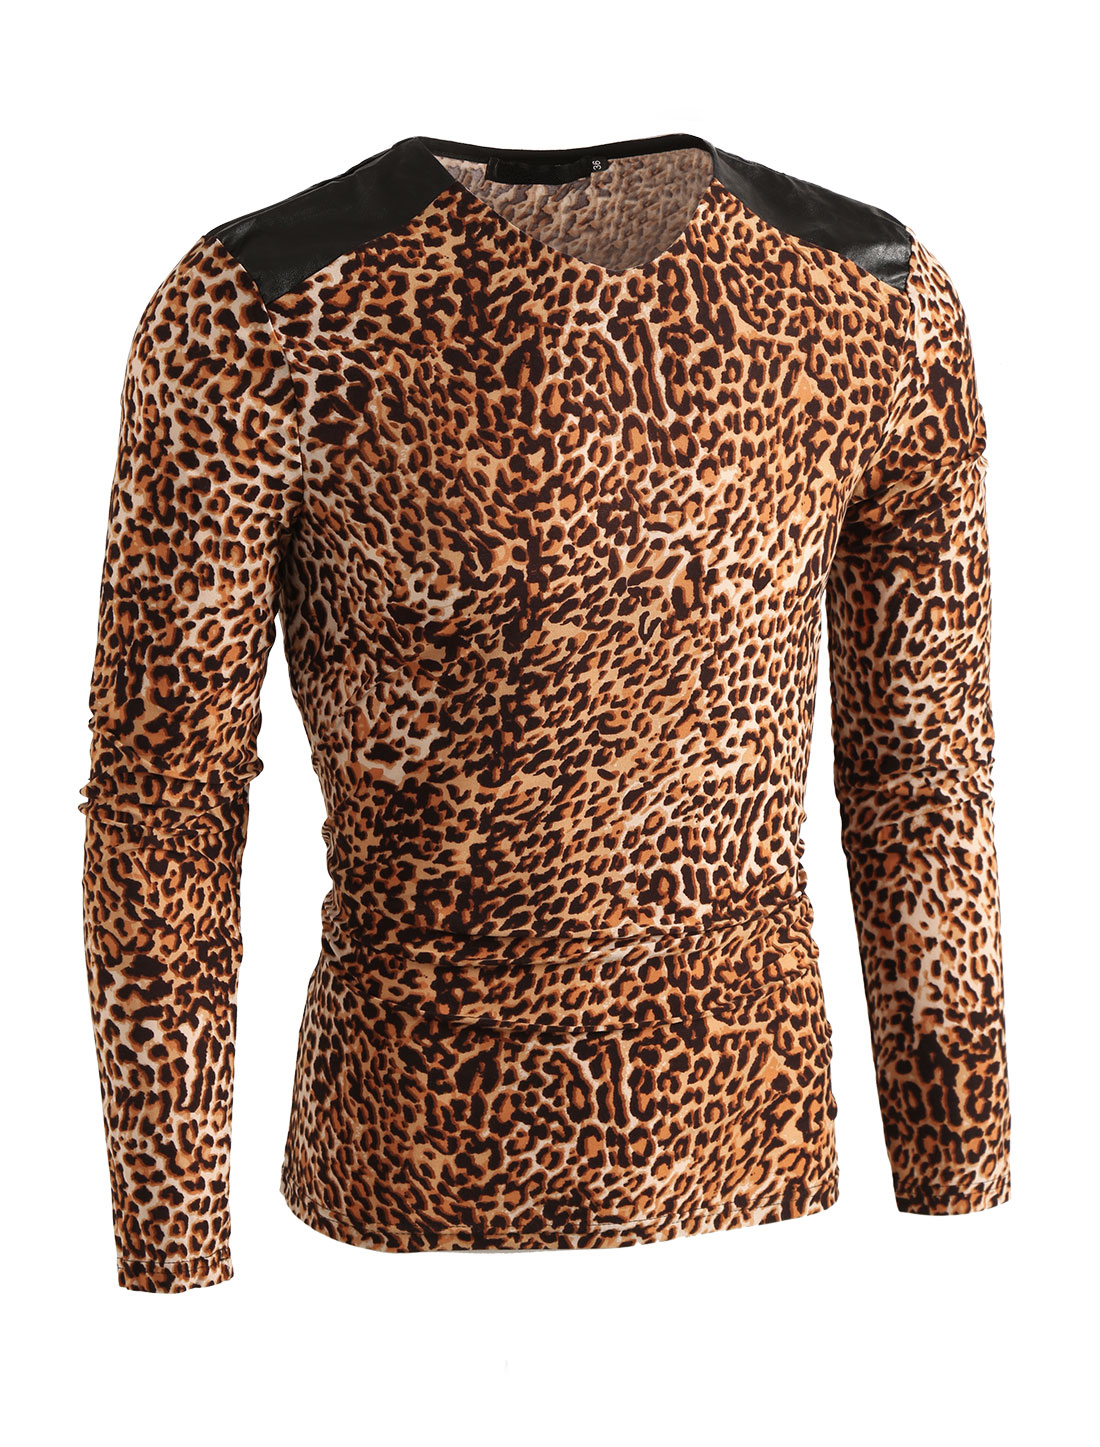 Men Beige Brown Leopard V-neck Long-sleeve Slim Tee Shirt M